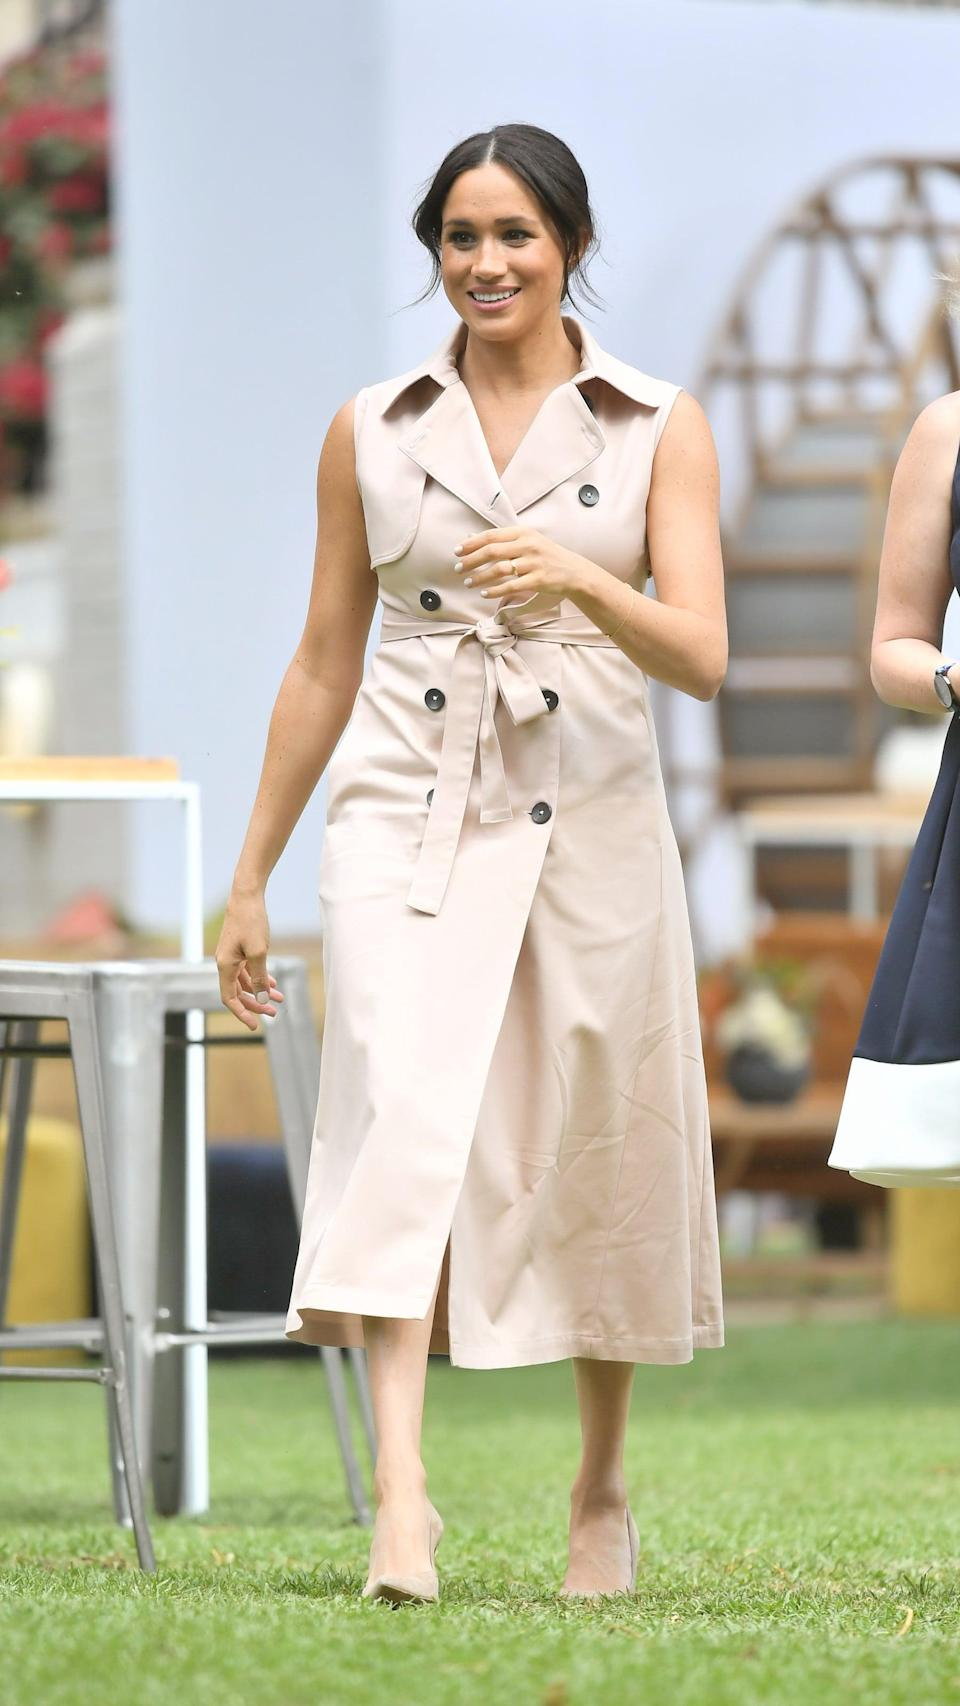 """<p>Meghan <a href=""""https://www.popsugar.co.uk/fashion/photo-gallery/46669039/image/46747379/Meghan-Duchess-Sussex-Wearing-Beige-Sleeveless-Belted-Trench-Dress"""" class=""""link rapid-noclick-resp"""" rel=""""nofollow noopener"""" target=""""_blank"""" data-ylk=""""slk:rewore this winning Nonie trench dress"""">rewore this winning Nonie trench dress</a> during her royal tour of Southern Africa the following year. </p>"""